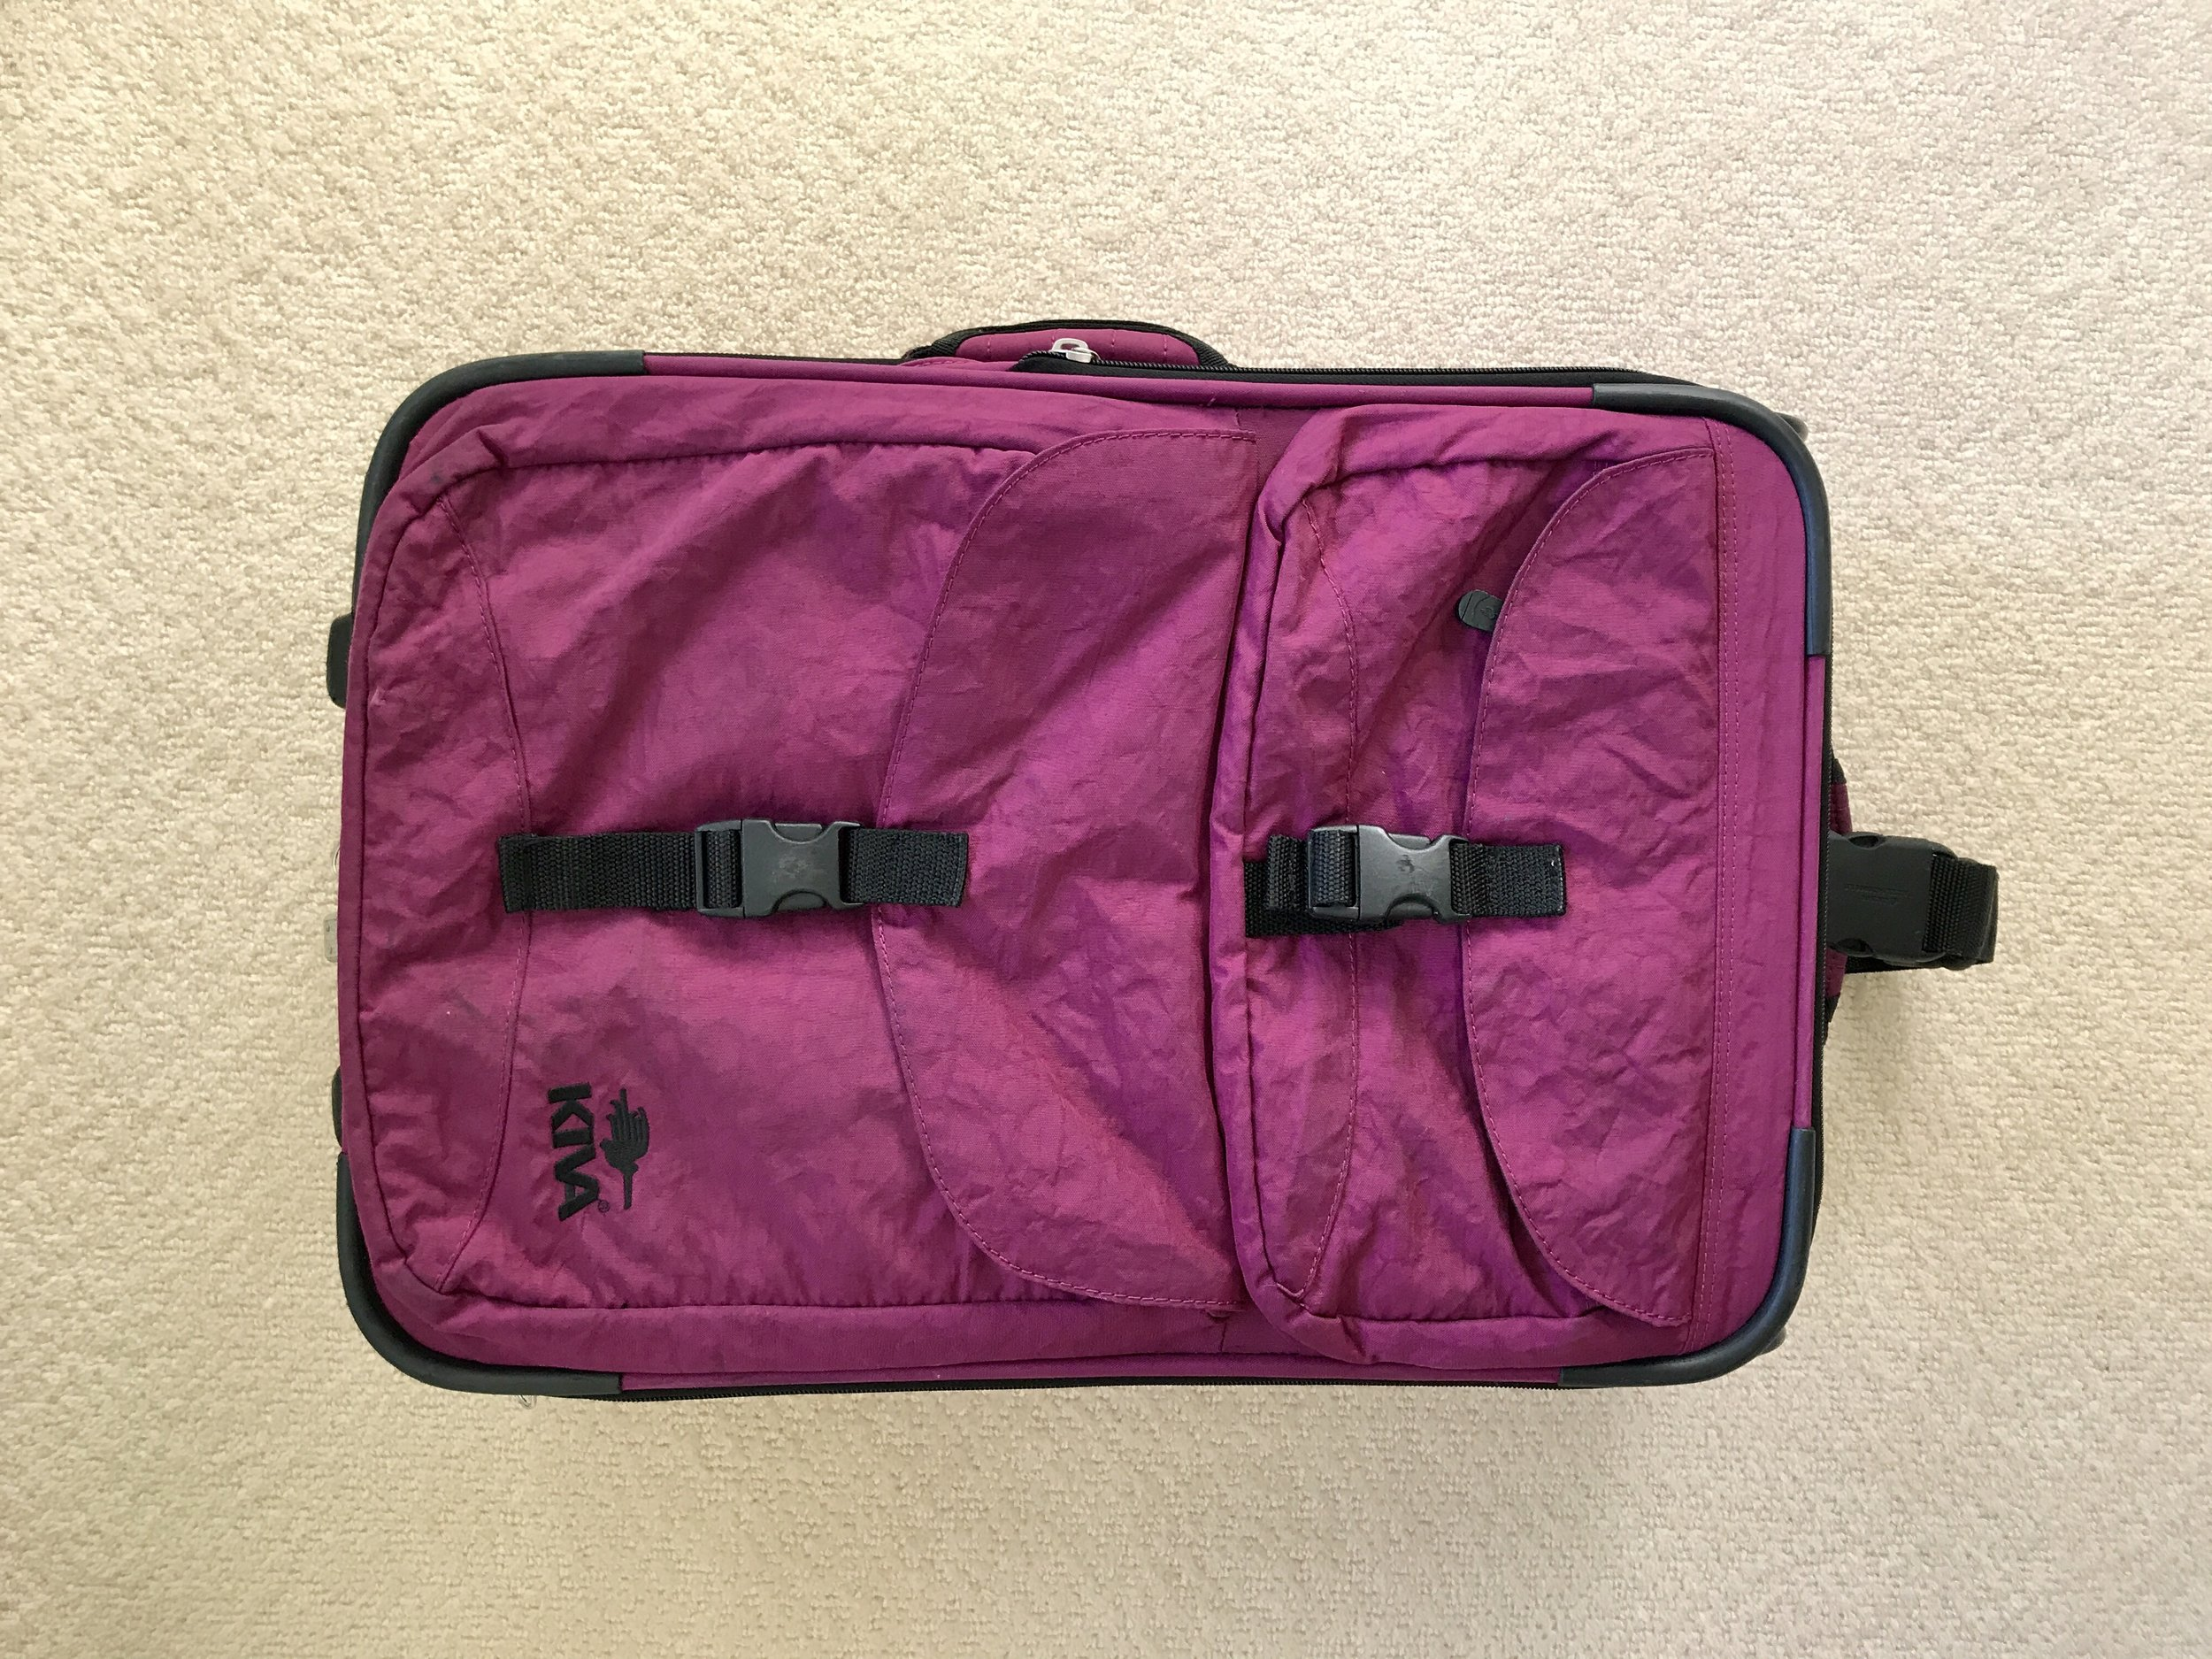 Ugly Suitcase